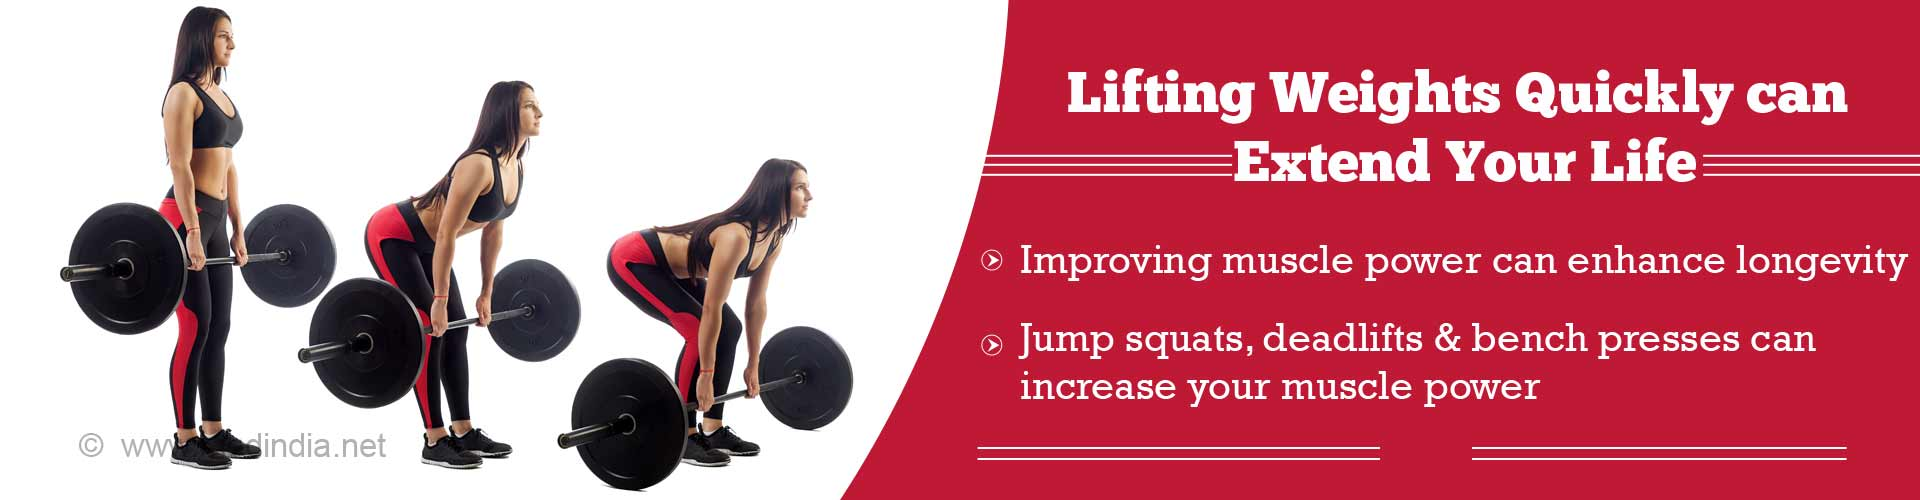 Lifting weights quickly can extend your life. Improving muscle power can enhance longevity. Jump squats, deadlifts and bench presses can increase your muscle power.